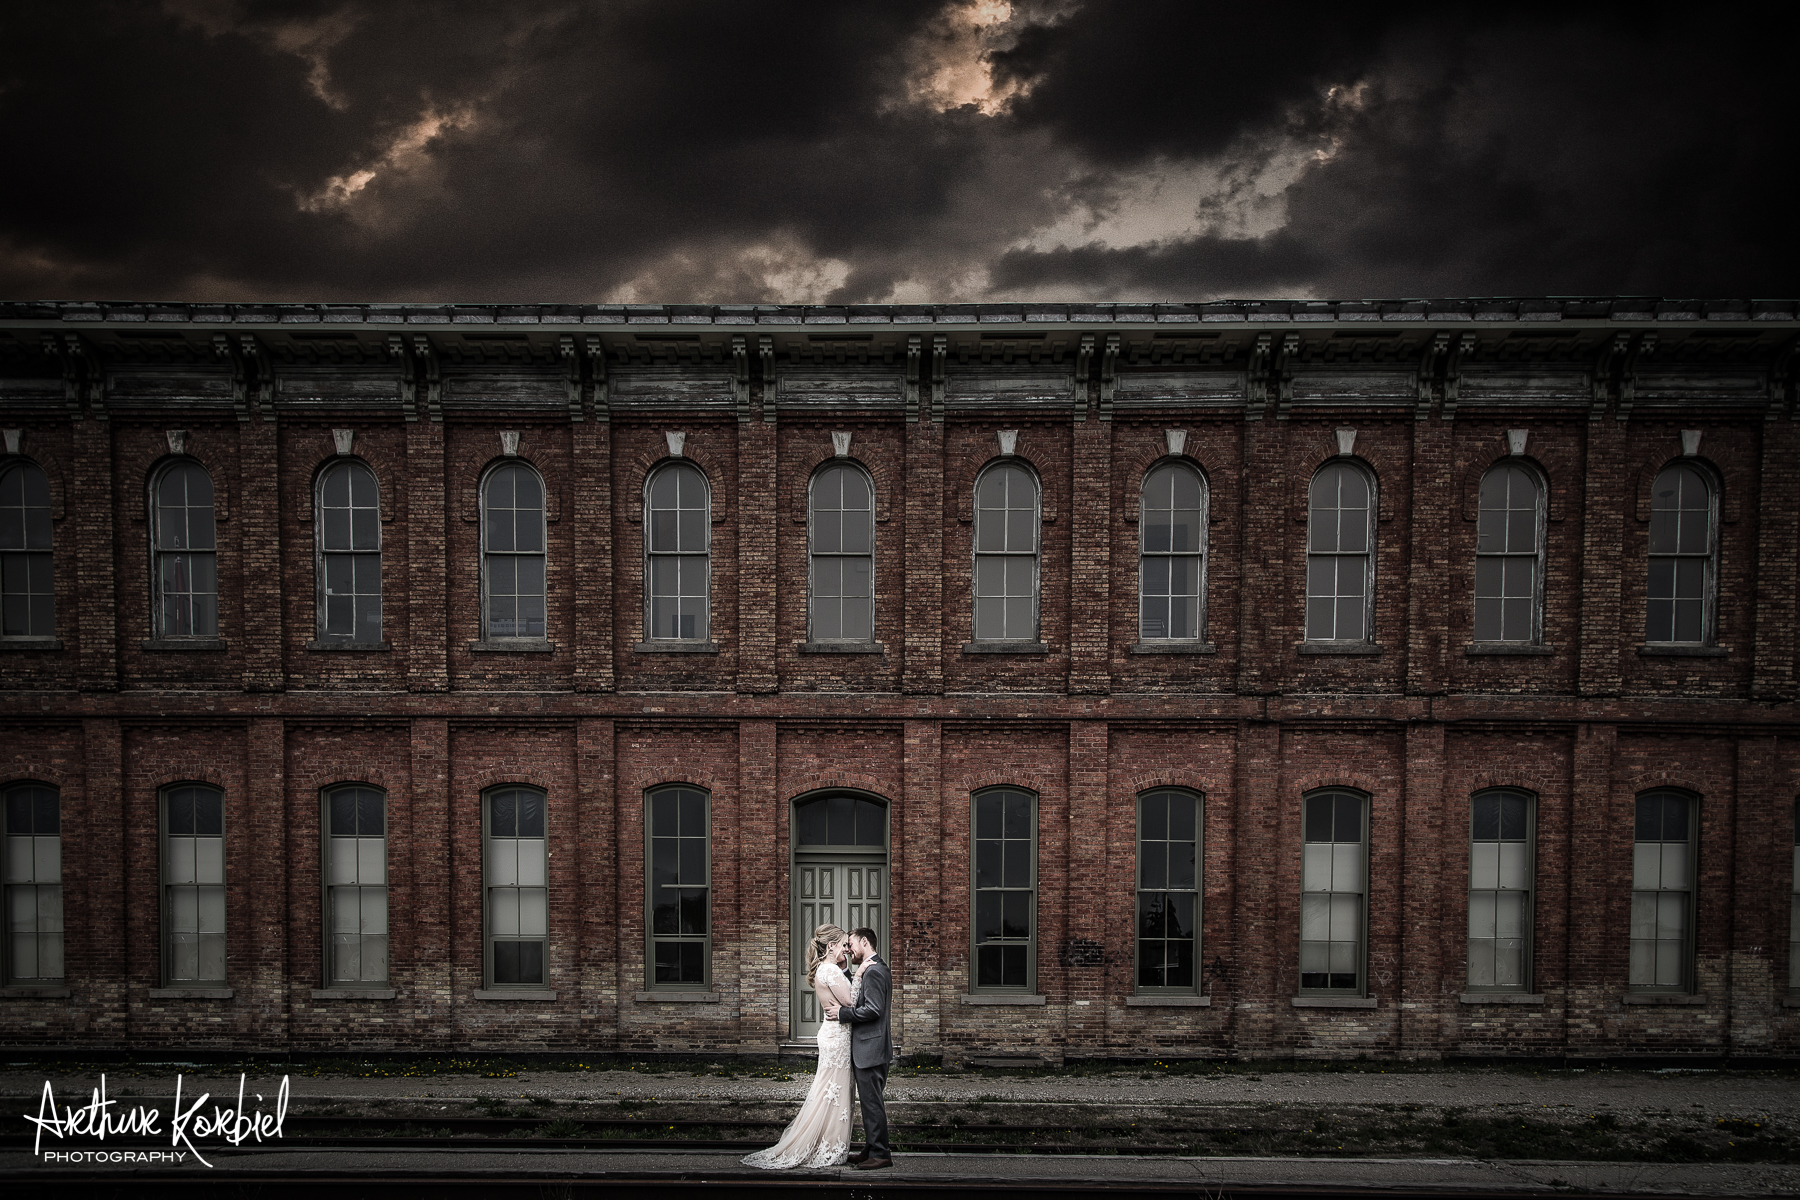 Arthur Korbiel Photography - London Wedding Photographer - CASO Train Station - St Thomas - Signature.jpg